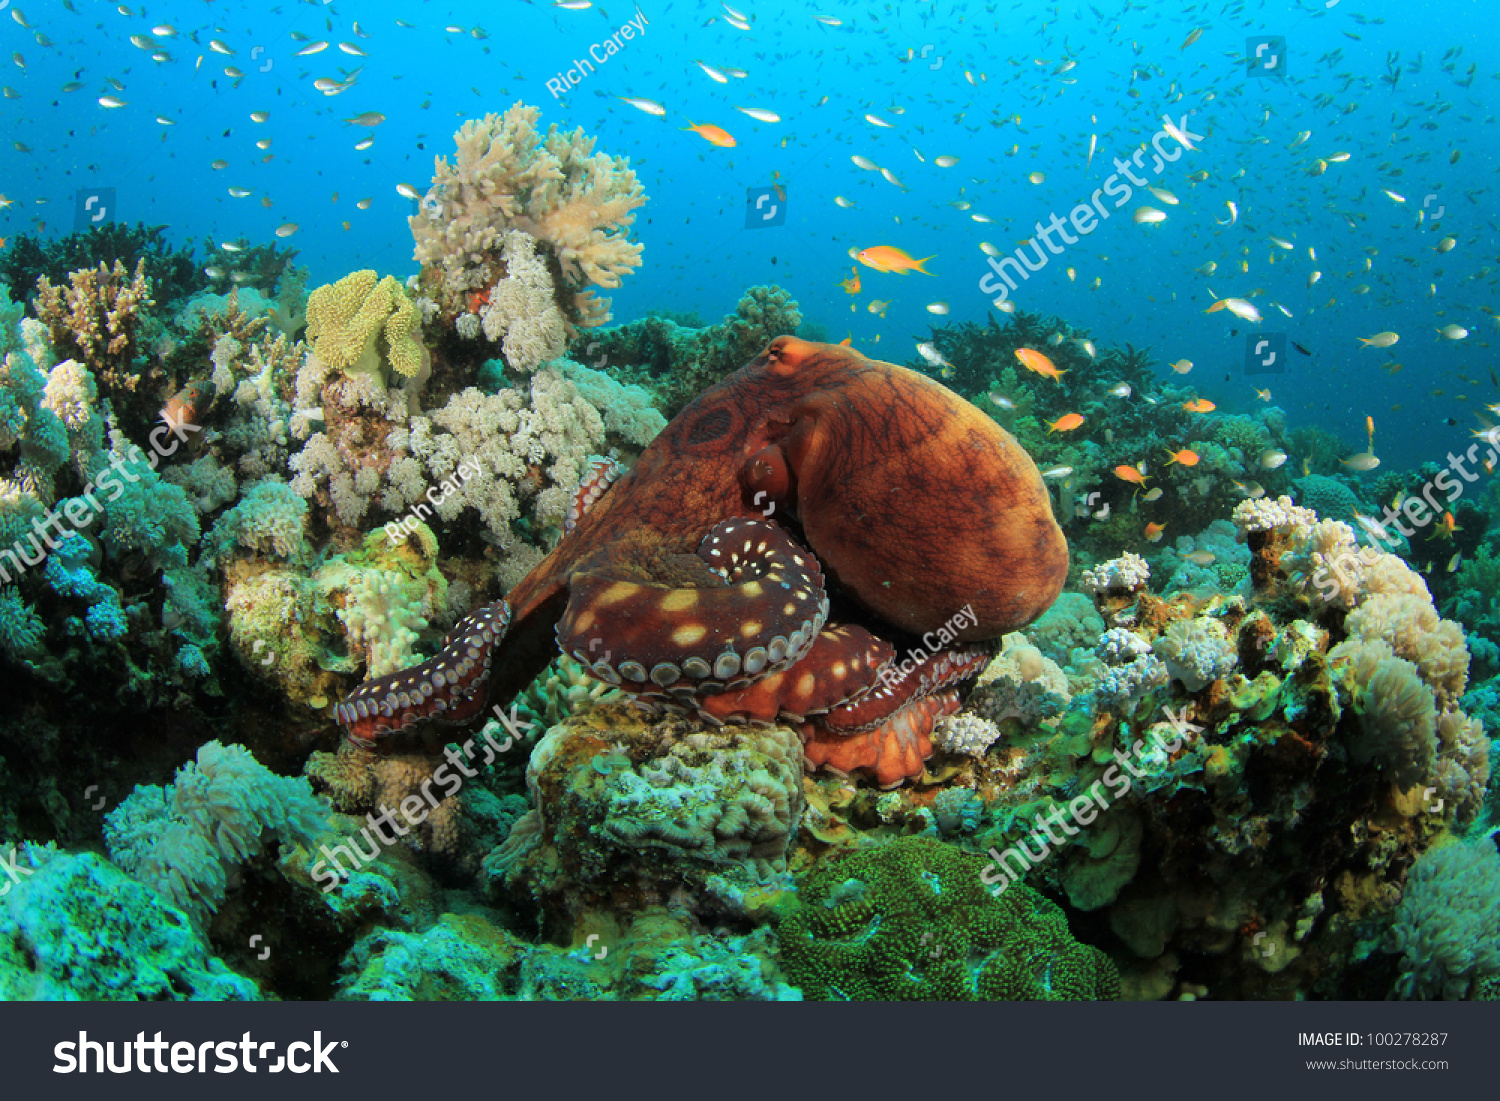 Octopus On Coral Reef Stock Photo 100278287 - Shutterstock